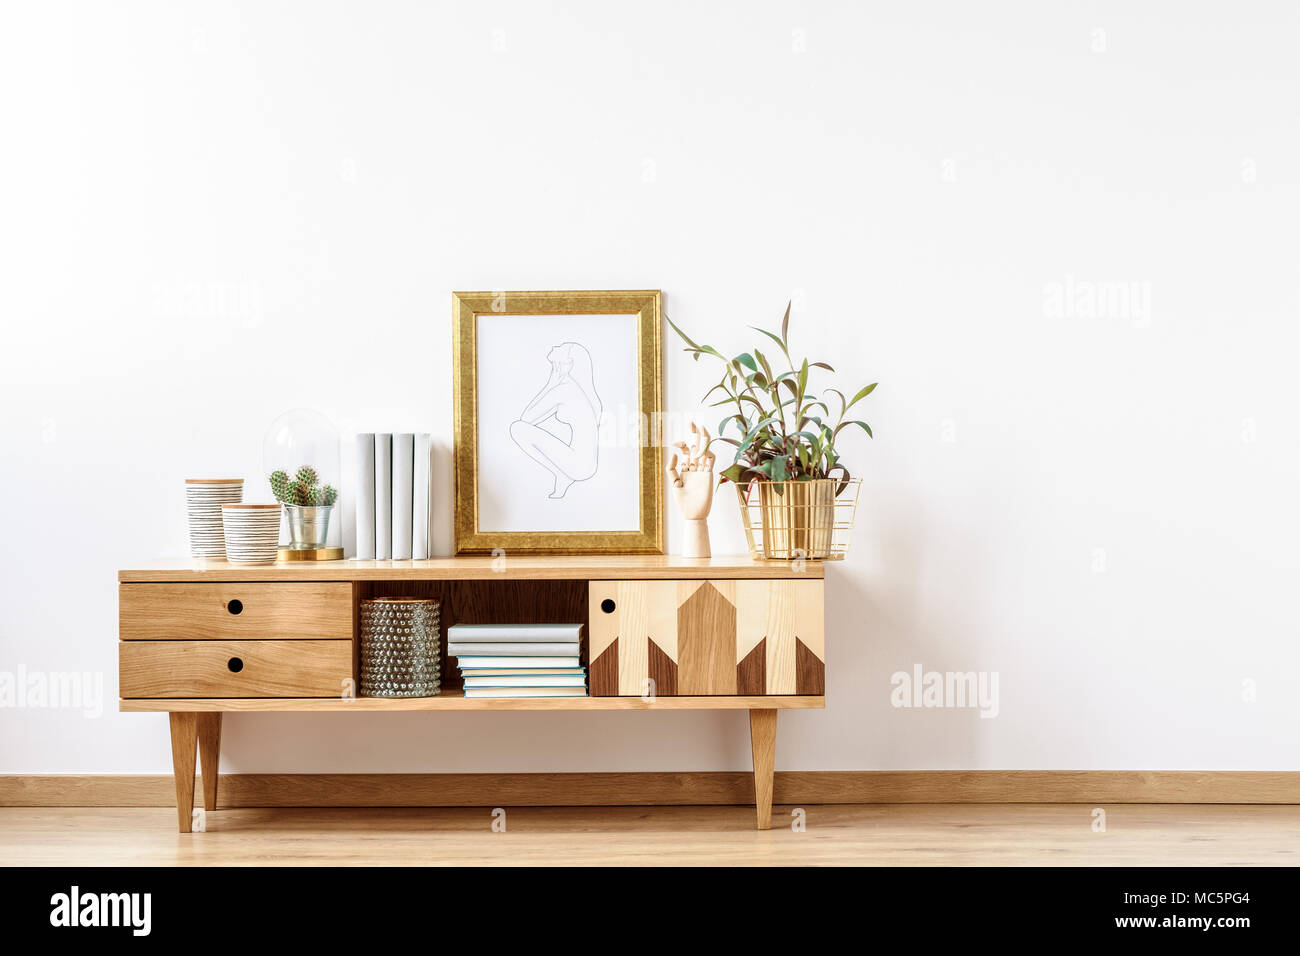 Scandinavian Wooden Cabinet With Books, Plants And Decorations By En Empty  Wall In A White